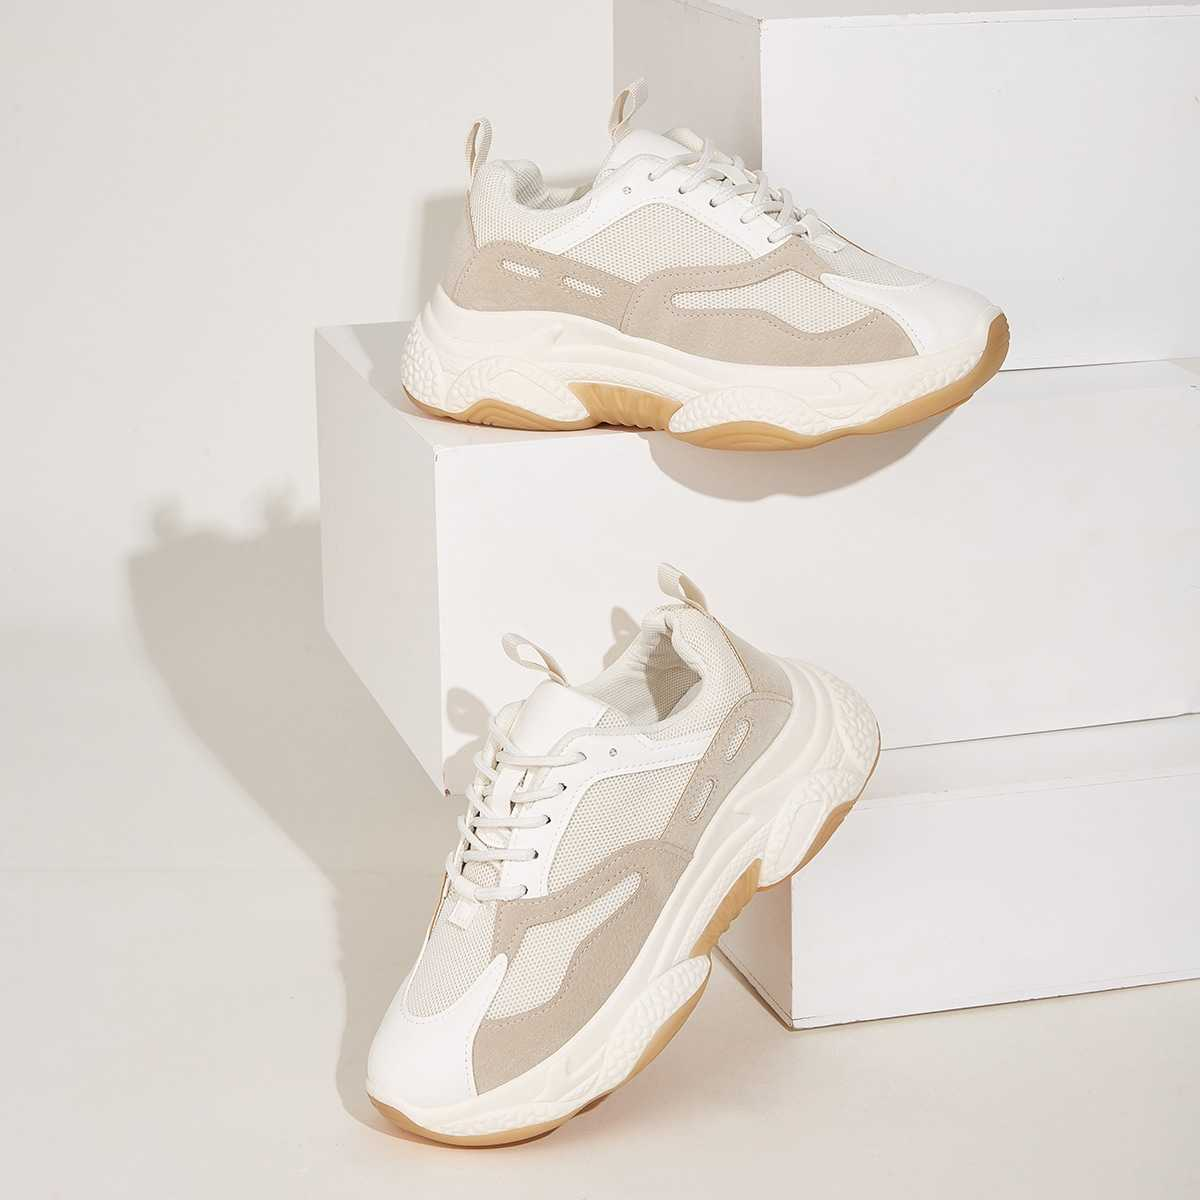 Lace-up Front Mesh Trainers in Beige by ROMWE on GOOFASH